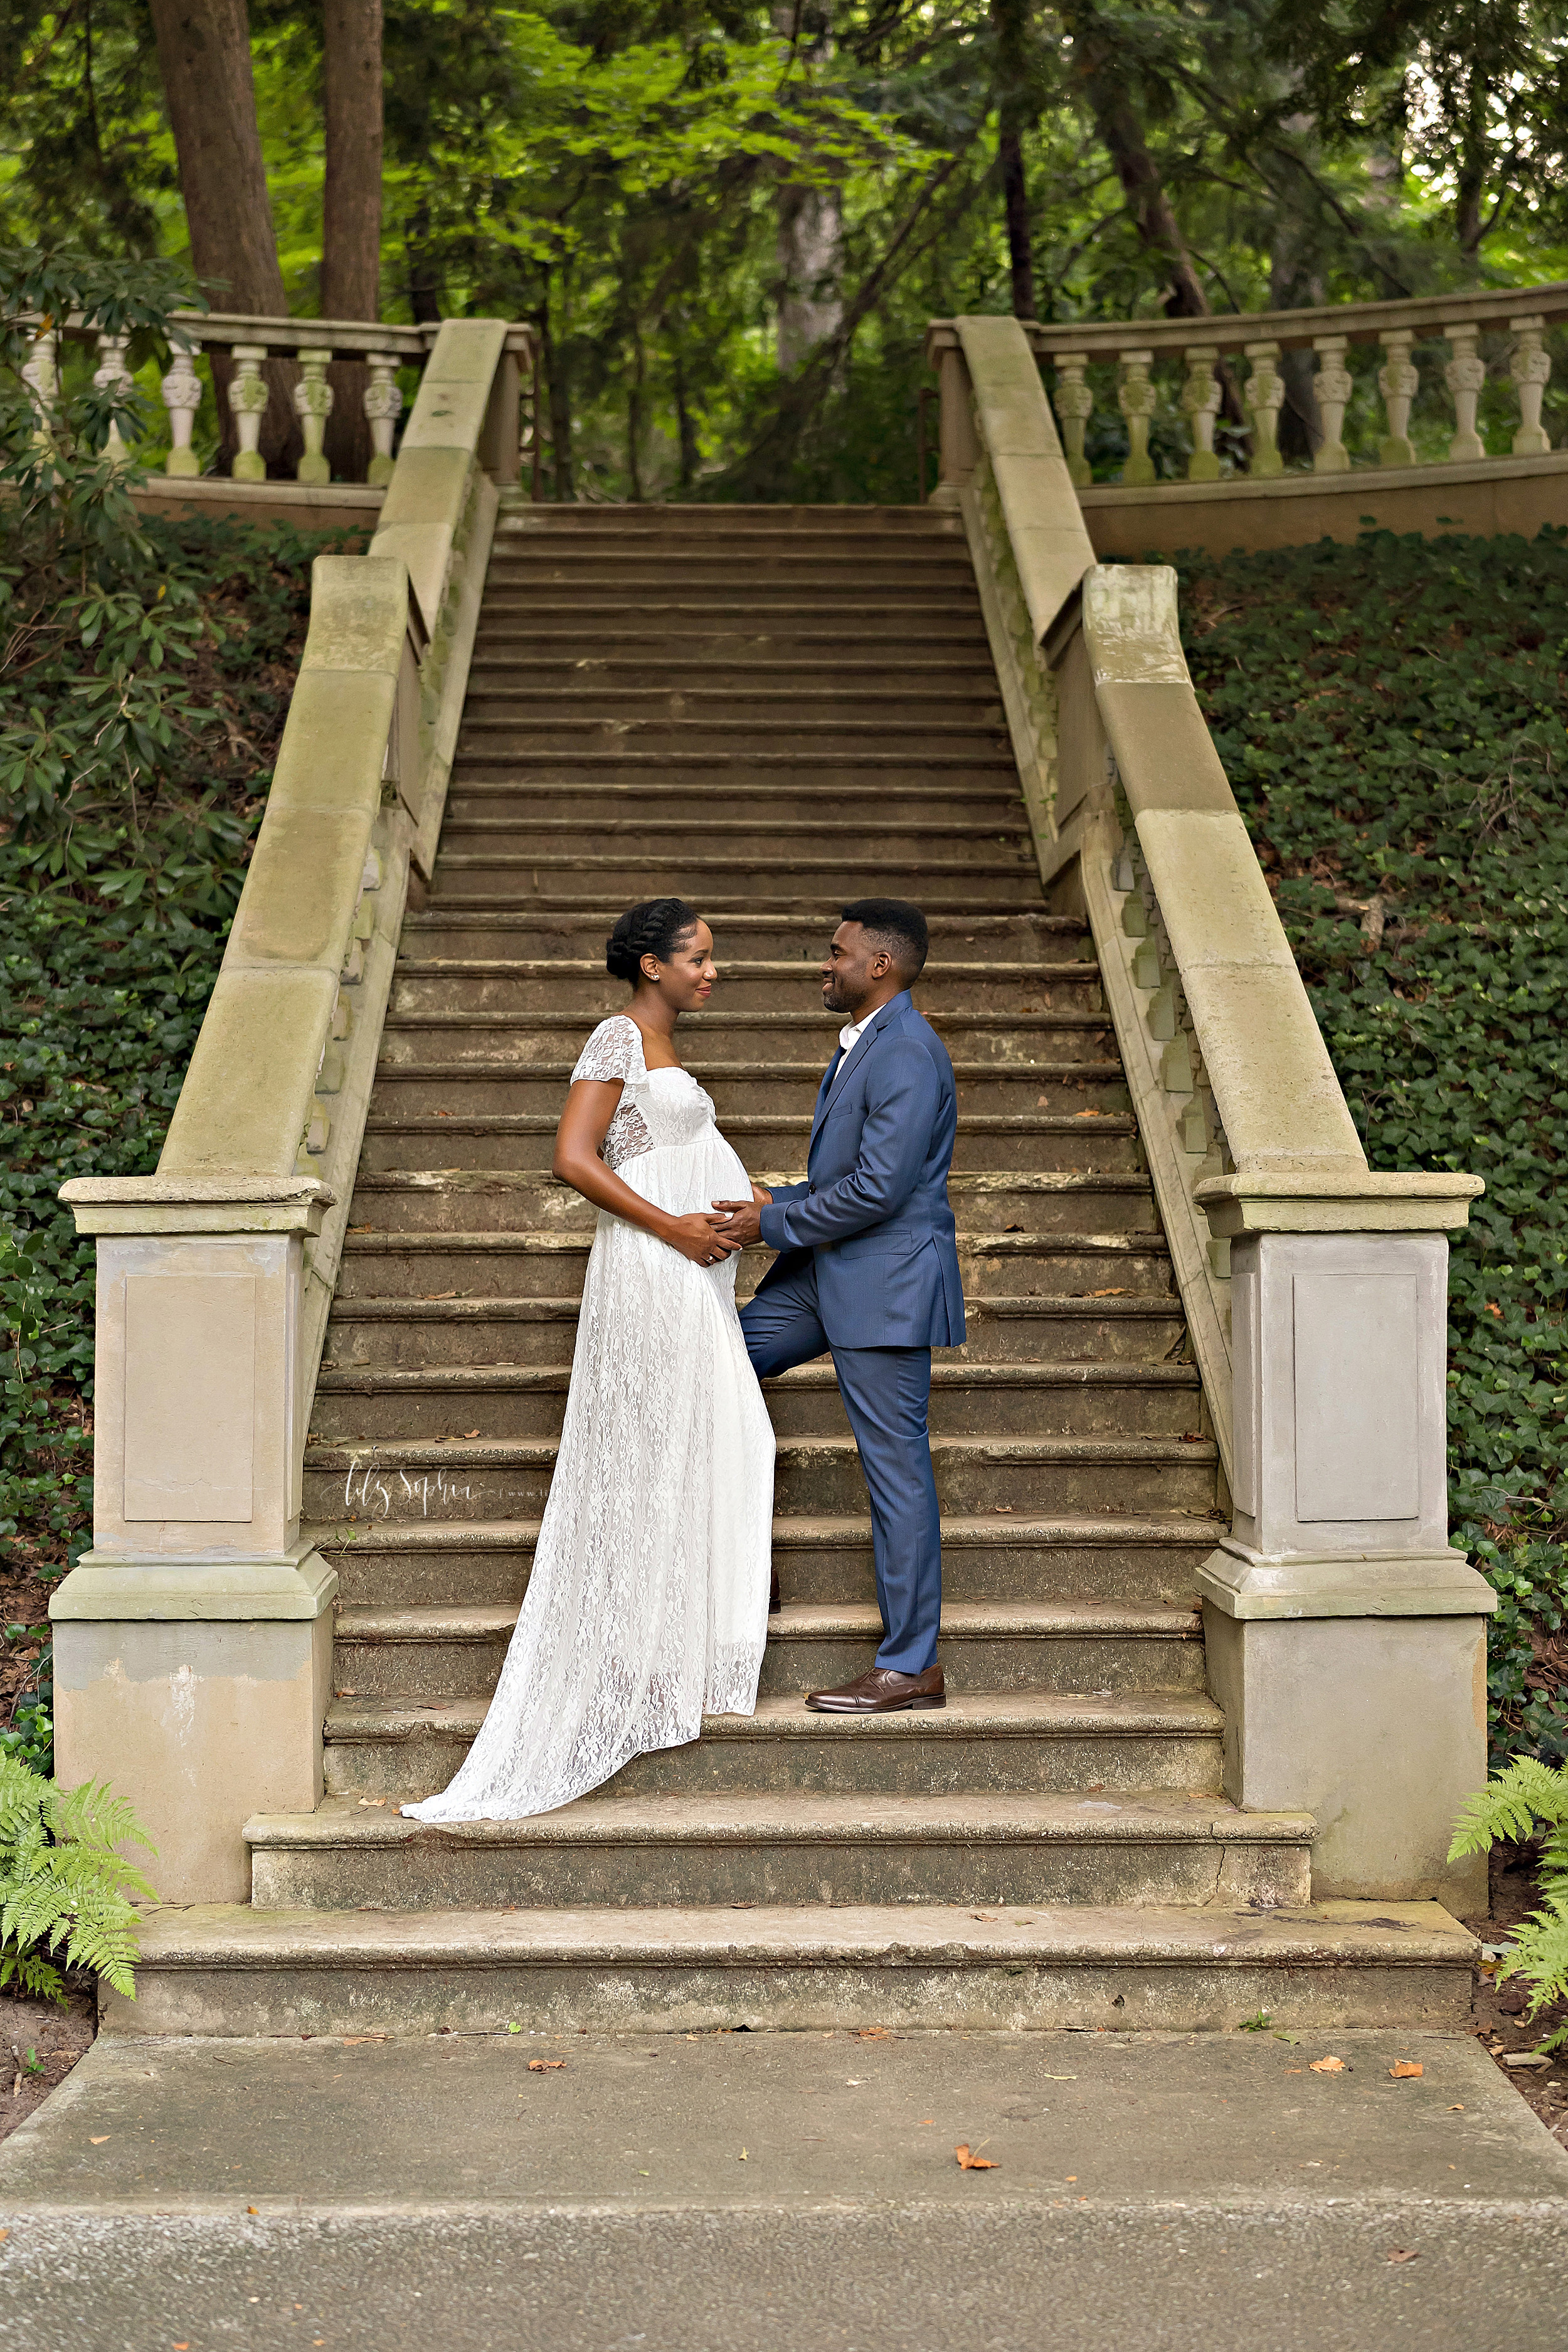 atlanta-decatur-candler-park-sandy-springs-buckhead-virginia-highlands-west-end-decatur-lily-sophia-photography-african-american-couple-expecting-baby-outdoor-garden-sunset-maternity-pictures_2242.jpg